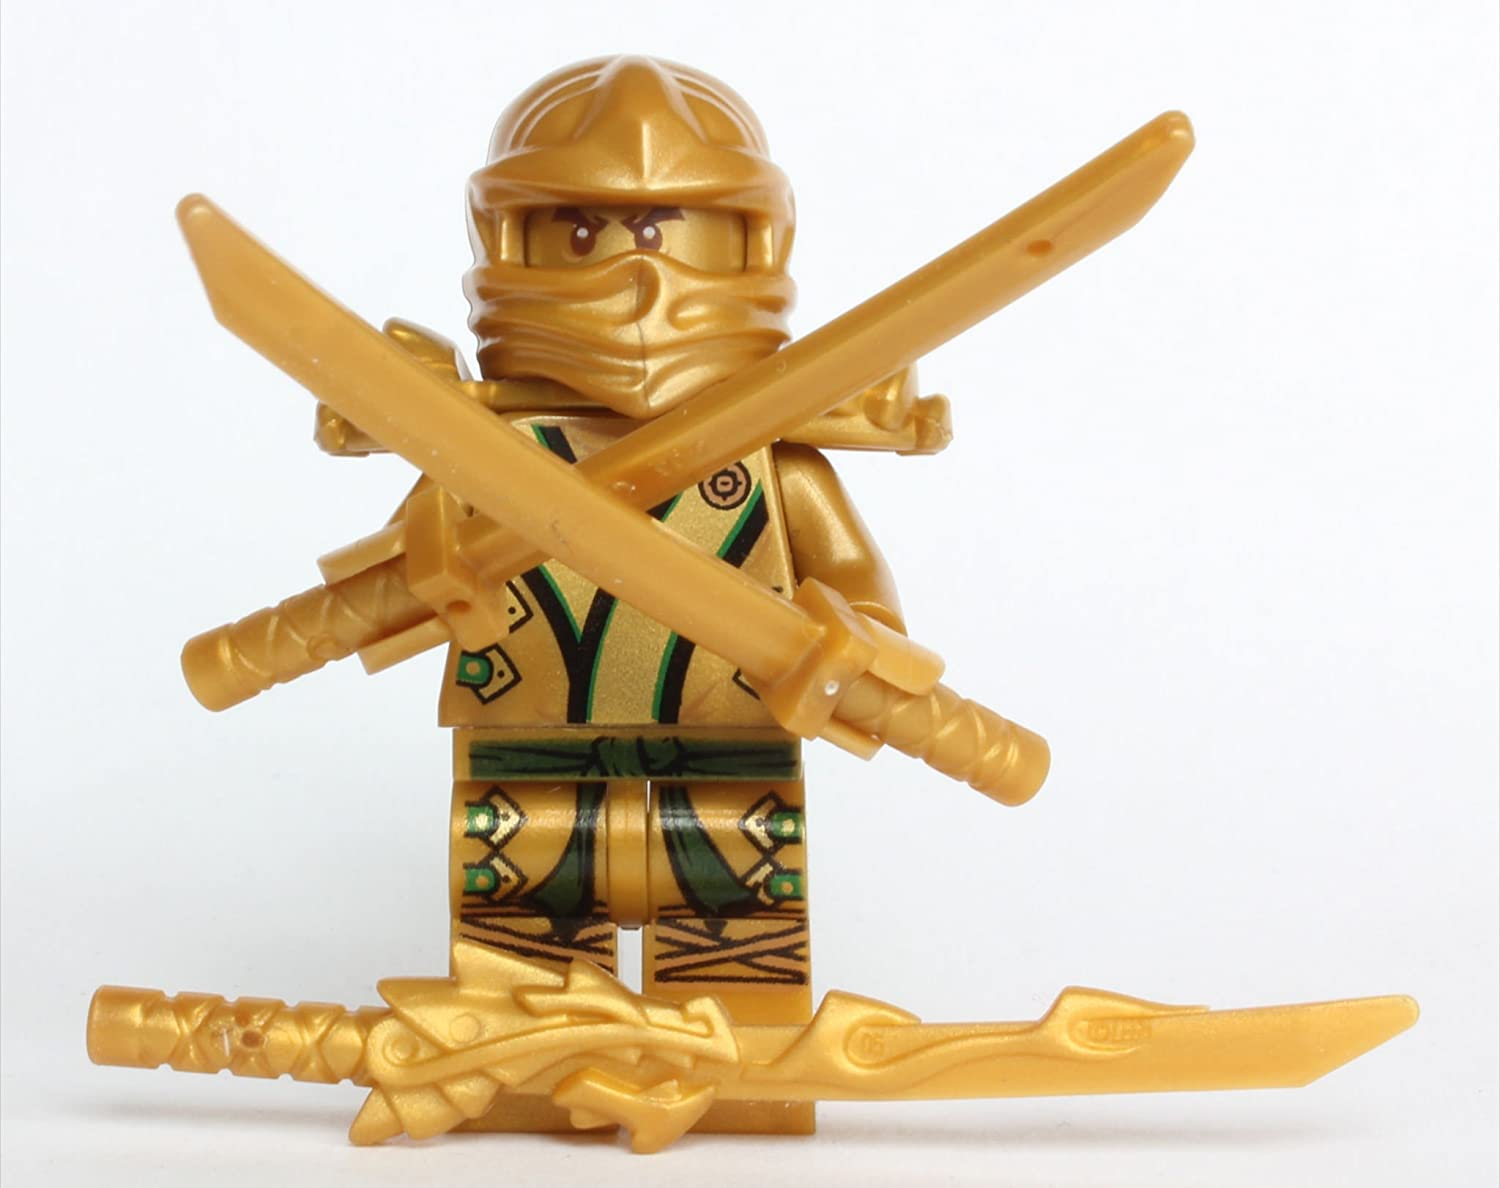 LEGO Ninjago - The GOLD Ninja with 3 Weapons